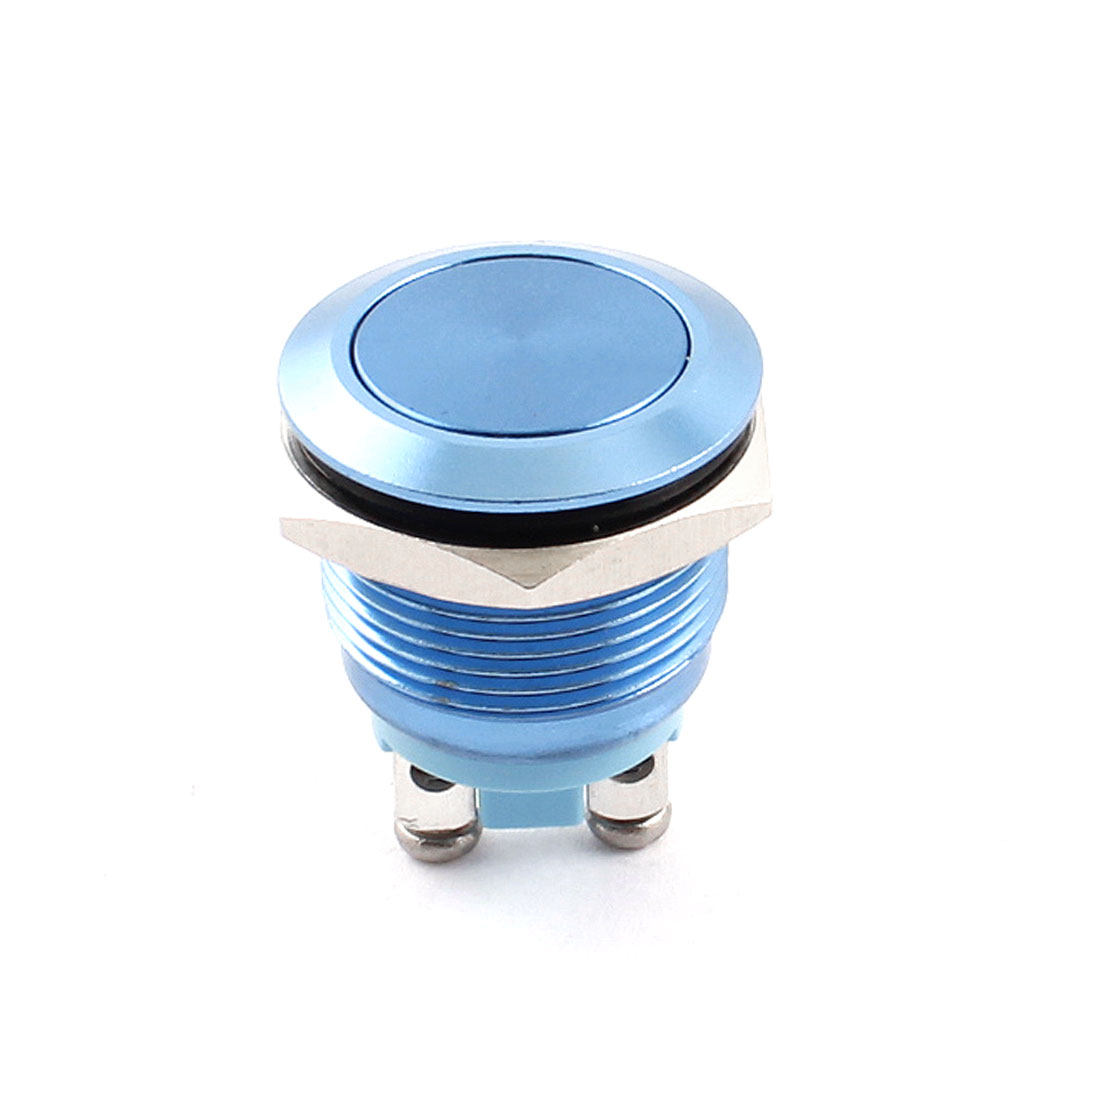 AC 250V 5A 19mm Thread Panel Mount SPST NO Momentary Blue Flat Head Metal Pushbutton Switch